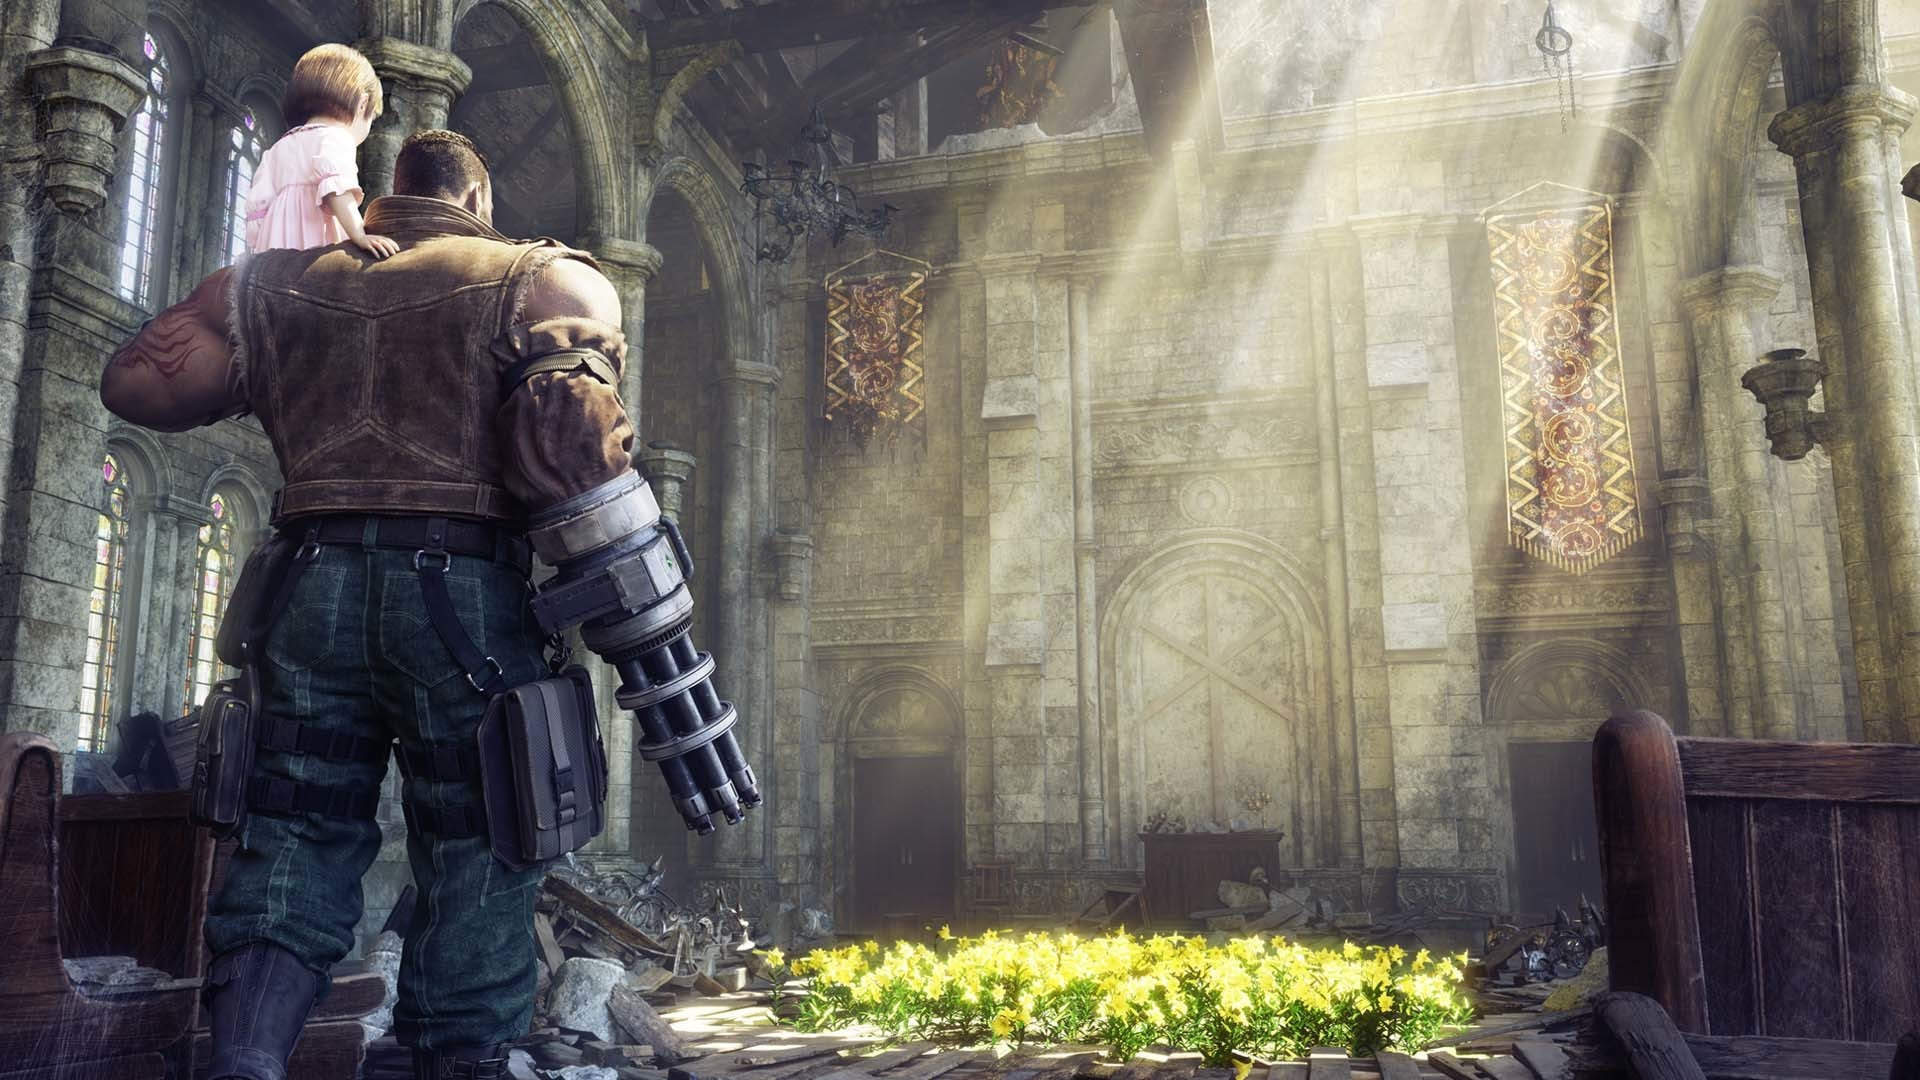 New Details for Final Fantasy VII Remake – Chocobo and Moogle Summons, Turks, Avalanche, Barrett and Aerith, More